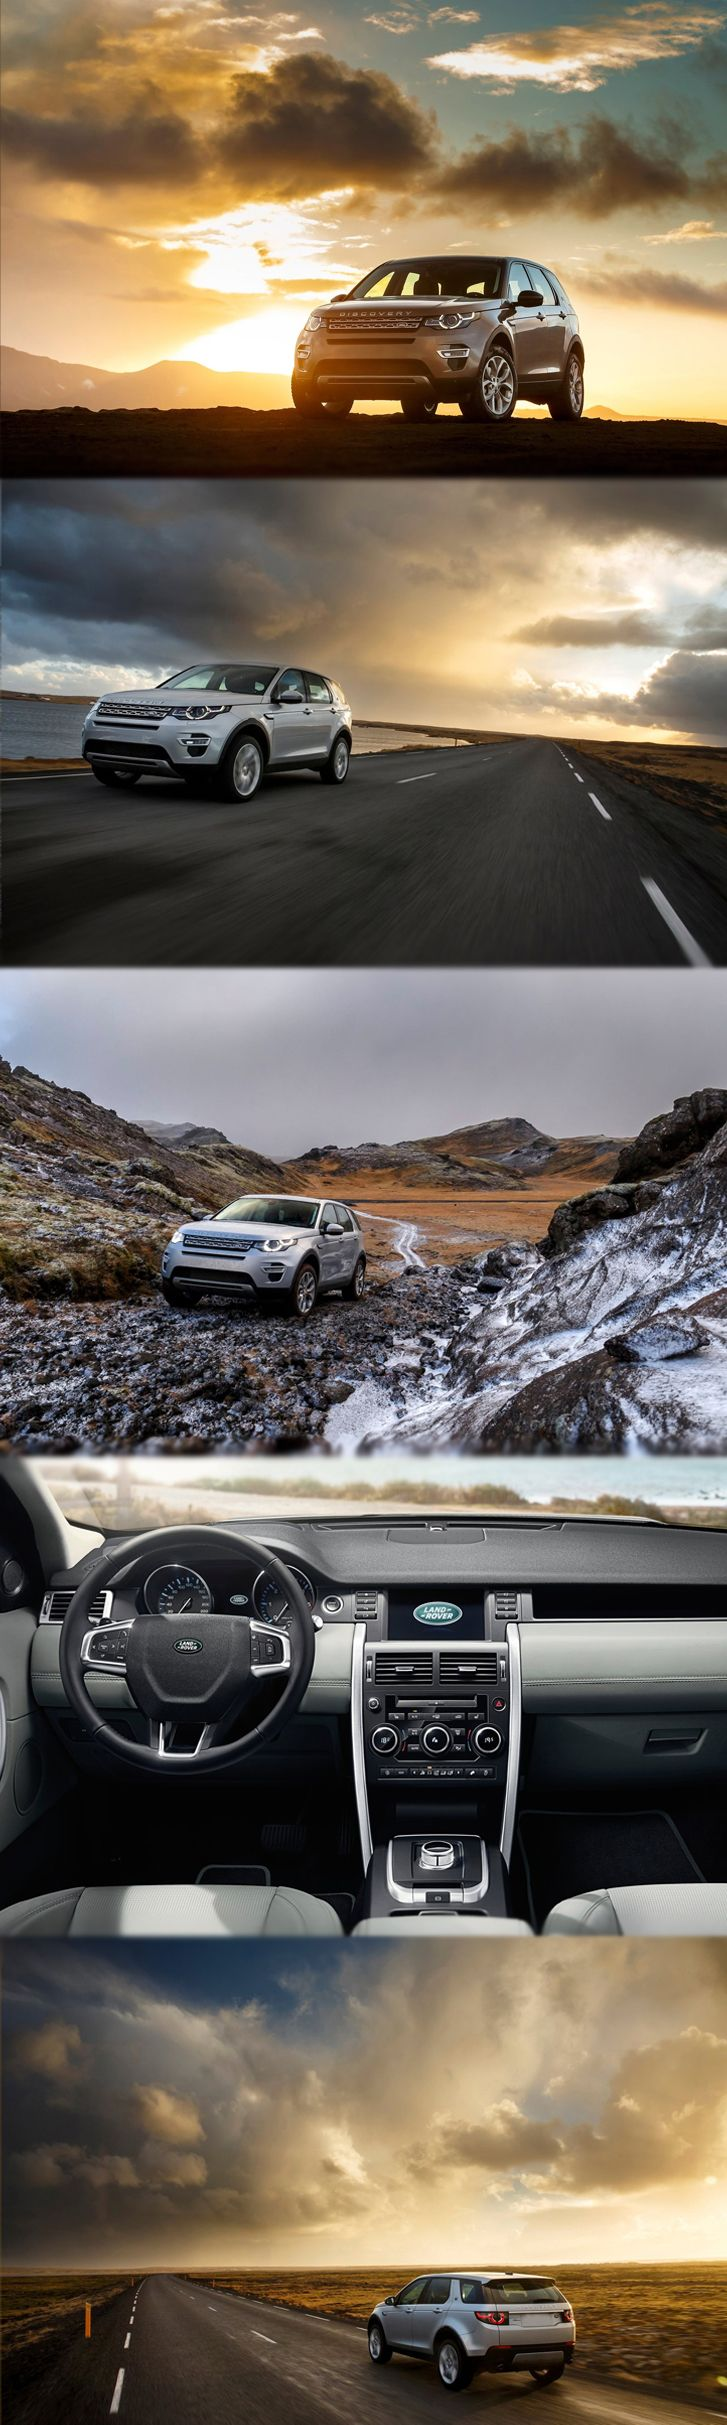 LAND ROVER DISCOVERY SPORT OFFERS A BLOB OF PRACTICALITY For more detail:https://www.rangerovergearbox.co.uk/blog/land-rover-discovery-sport-offers-blob-practicality/